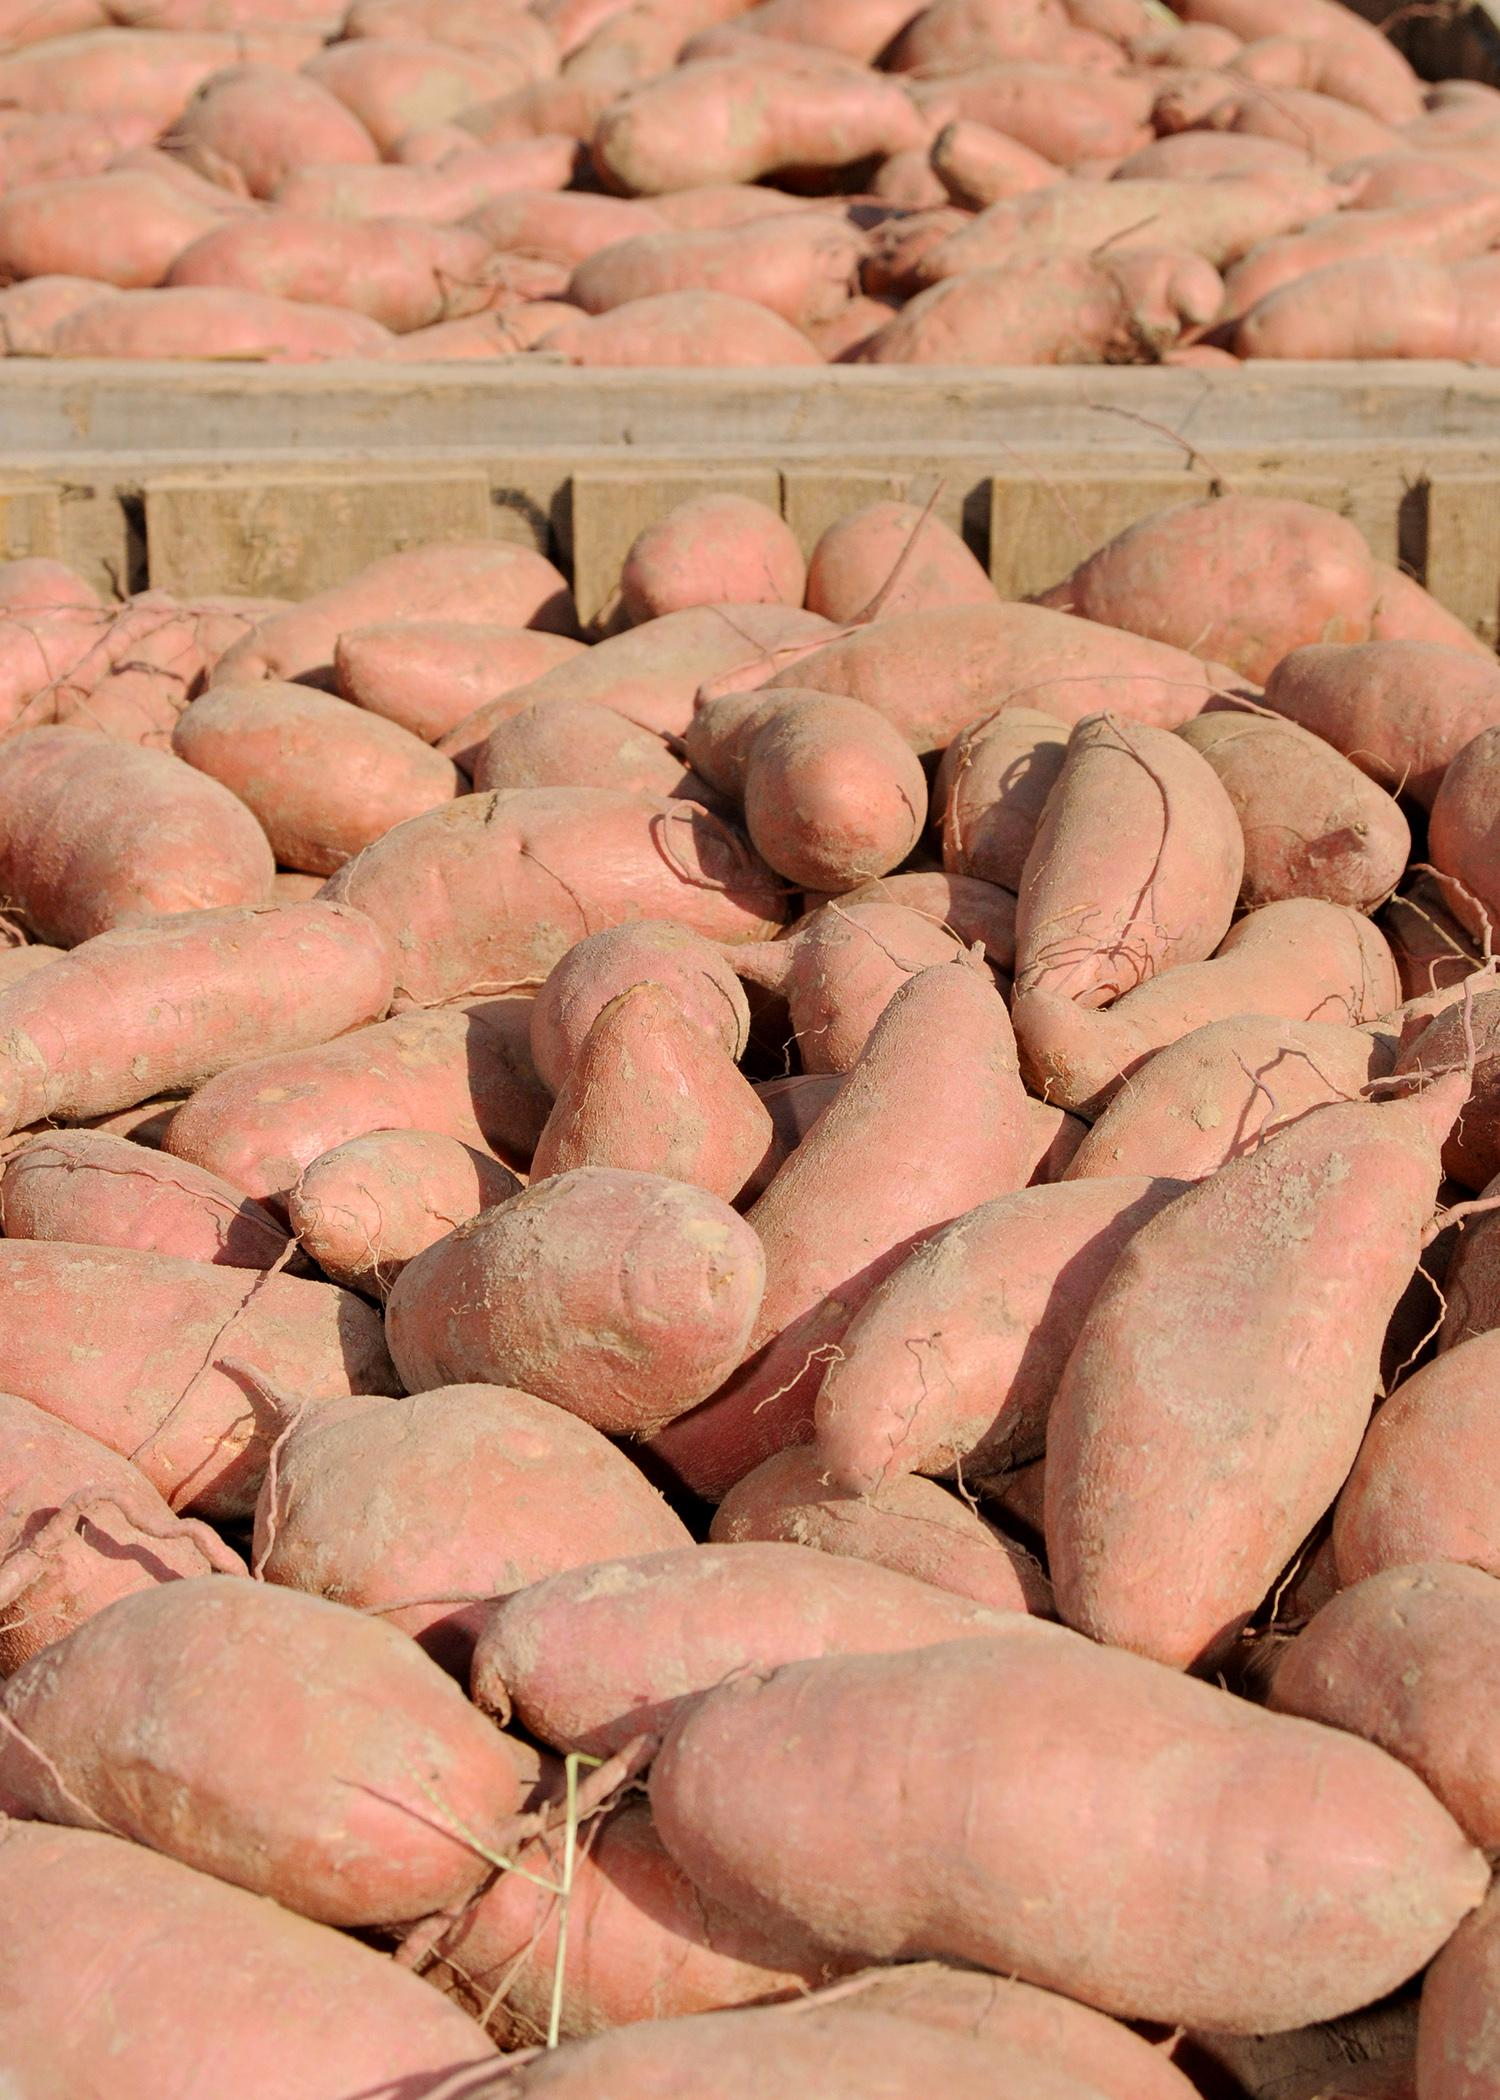 The Mississippi State University Extension Service works in a variety of ways to support Mississippi's sweet potato industry, which ranks third in the U.S. in production. (Photo by MSU Ag Communications/Kat Lawrence)